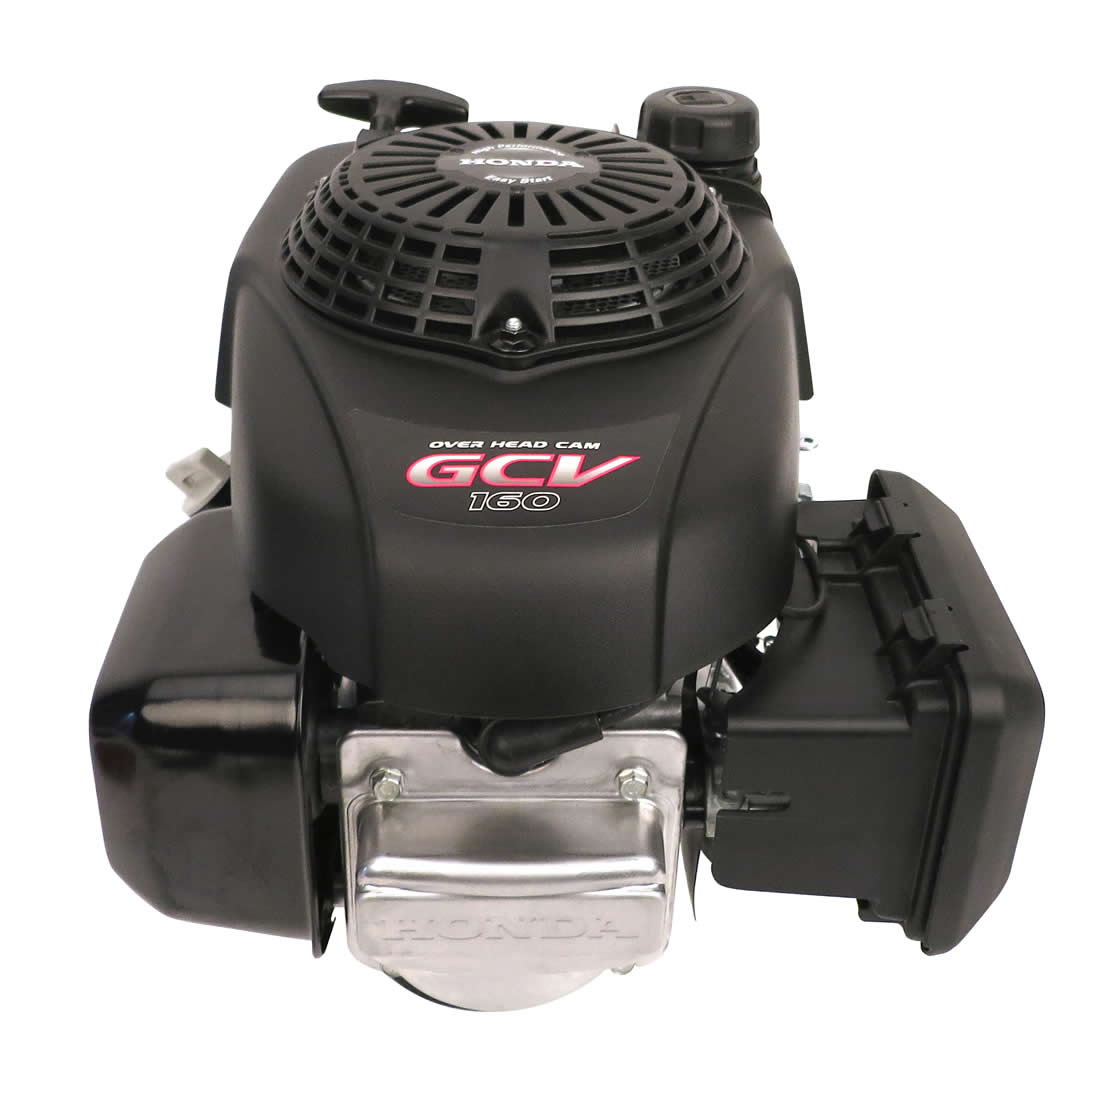 Honda Engines | GCV160 4-Stroke Engine | Features, Specs, and Model Info